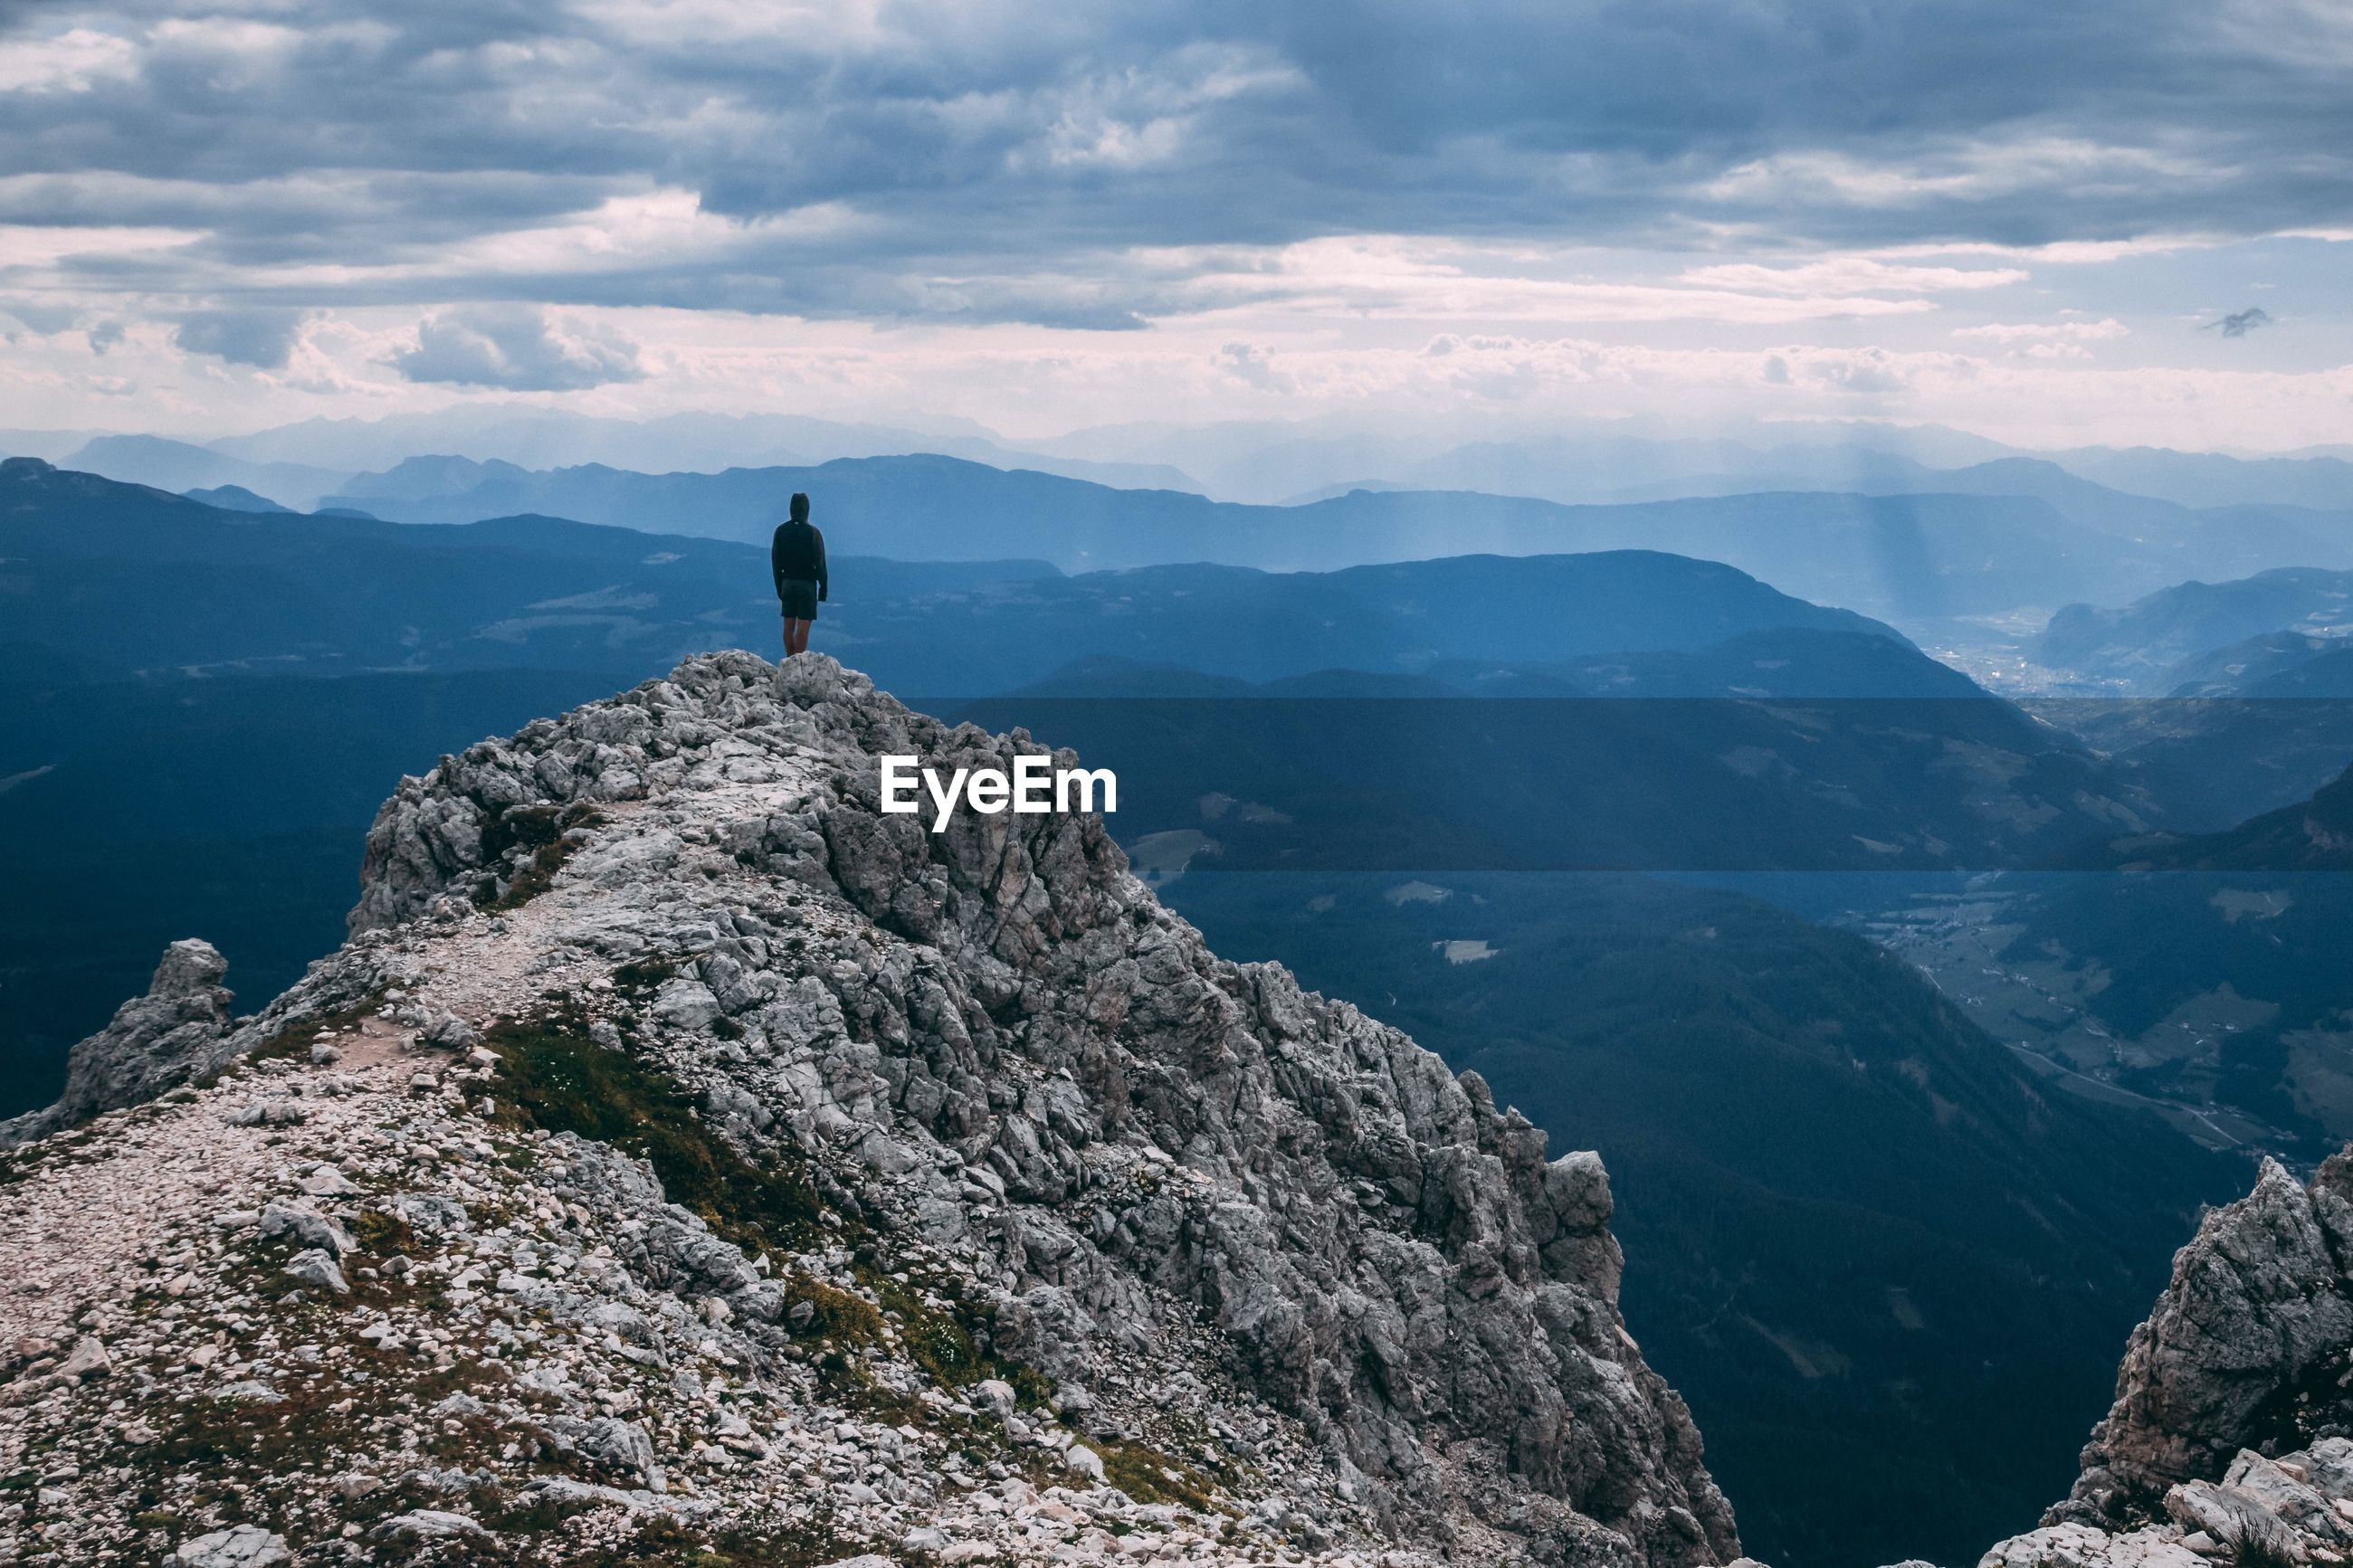 Rear view of man looking at landscape while standing on mountain against cloudy sky